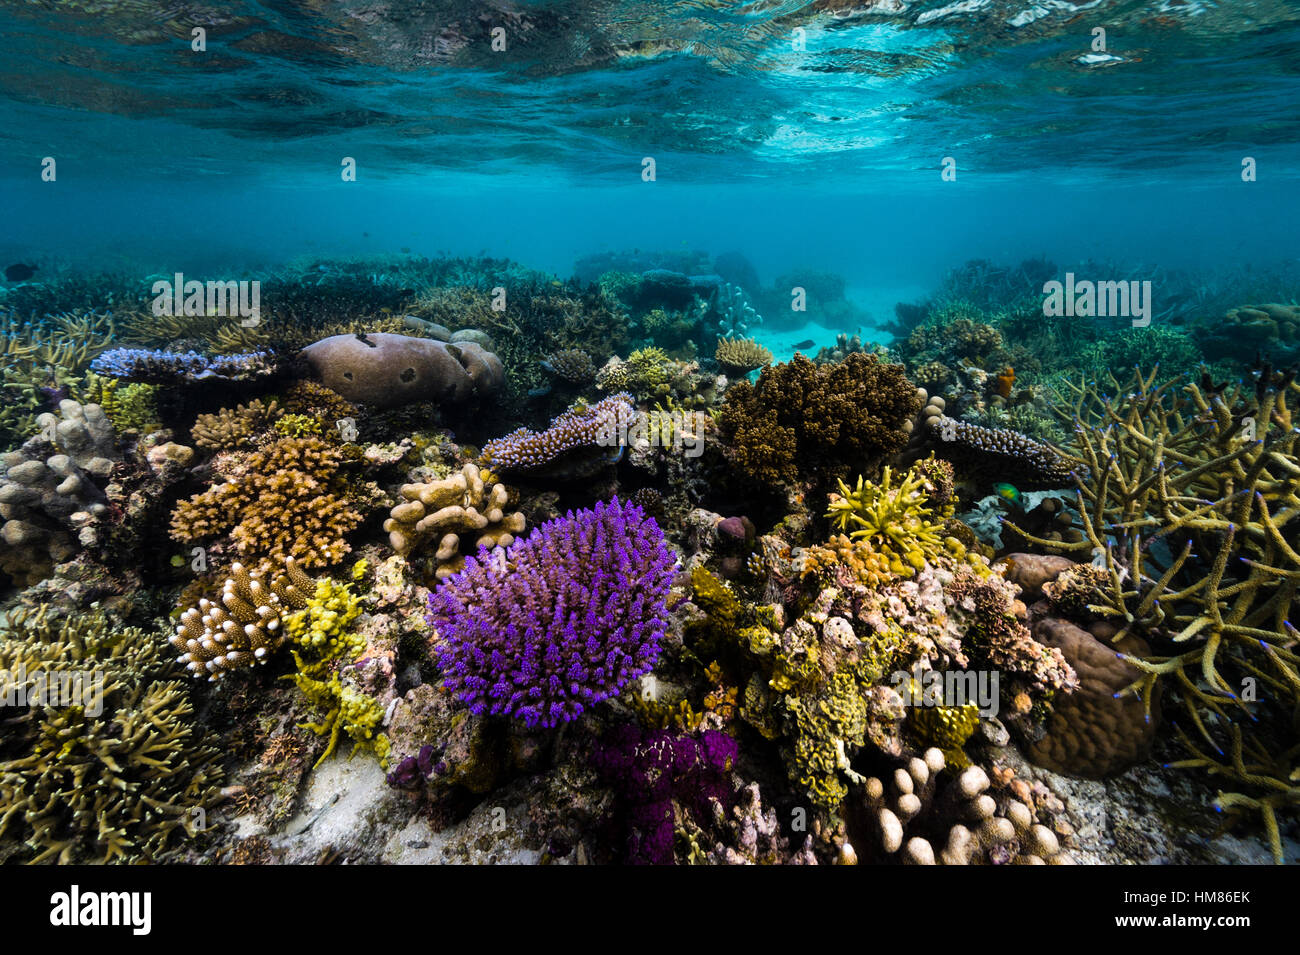 A bright purple hard coral sprouting from a flourishing tropical reef in shallow water. - Stock Image